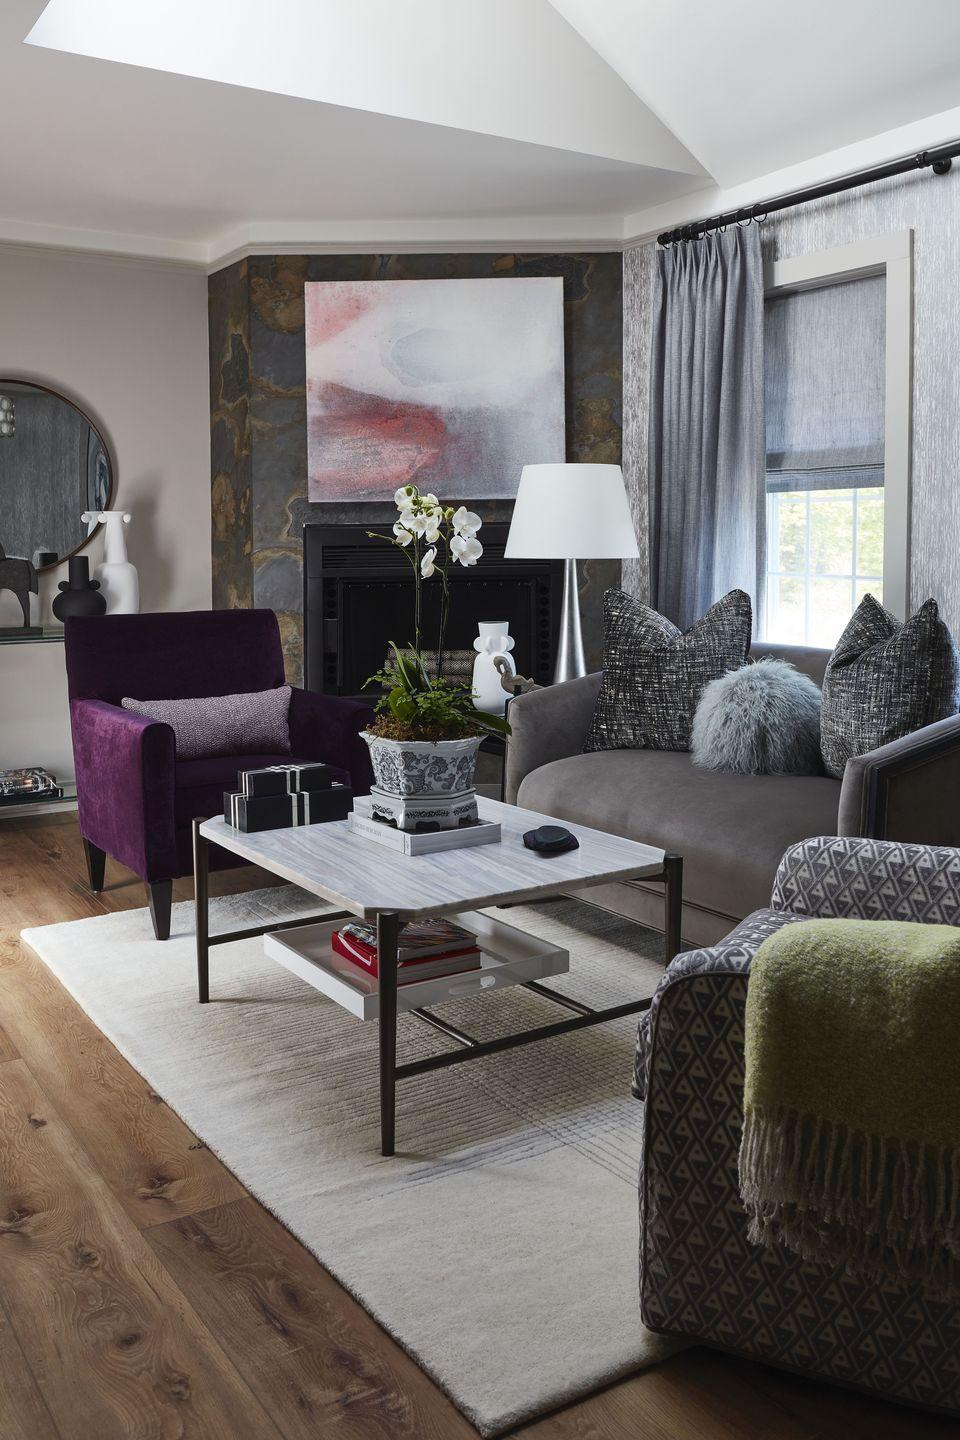 """<p>This room by Dennese Guadeloupe Rojas of <a href=""""http://www.interiorsbydesignmd.com/"""" rel=""""nofollow noopener"""" target=""""_blank"""" data-ylk=""""slk:Interiors by Design"""" class=""""link rapid-noclick-resp"""">Interiors by Design</a> is an homage to her mother. """"She took simple furnishings and accessories and created a luxurious yet inviting home where family and friends enjoyed gathering,"""" Rojas told us. Similarly, the designer arranged custom-upholstered seating in jewel tones around a cocktail table from <a href=""""https://www.universalfurniture.com/"""" rel=""""nofollow noopener"""" target=""""_blank"""" data-ylk=""""slk:Universal Furniture"""" class=""""link rapid-noclick-resp"""">Universal Furniture</a>. The fireplace's geode-like wallpaper is by <a href=""""https://vahallan.com/"""" rel=""""nofollow noopener"""" target=""""_blank"""" data-ylk=""""slk:Vahallan"""" class=""""link rapid-noclick-resp"""">Vahallan</a>, and the artwork is from <a href=""""https://iconicpineapple.com/"""" rel=""""nofollow noopener"""" target=""""_blank"""" data-ylk=""""slk:Iconic Pineapple"""" class=""""link rapid-noclick-resp"""">Iconic Pineapple</a>. """"My sincere hope is that many wonderful memories are created for all who visit the Doreen Suite at the Cornell Inn,"""" Rojas added.</p>"""